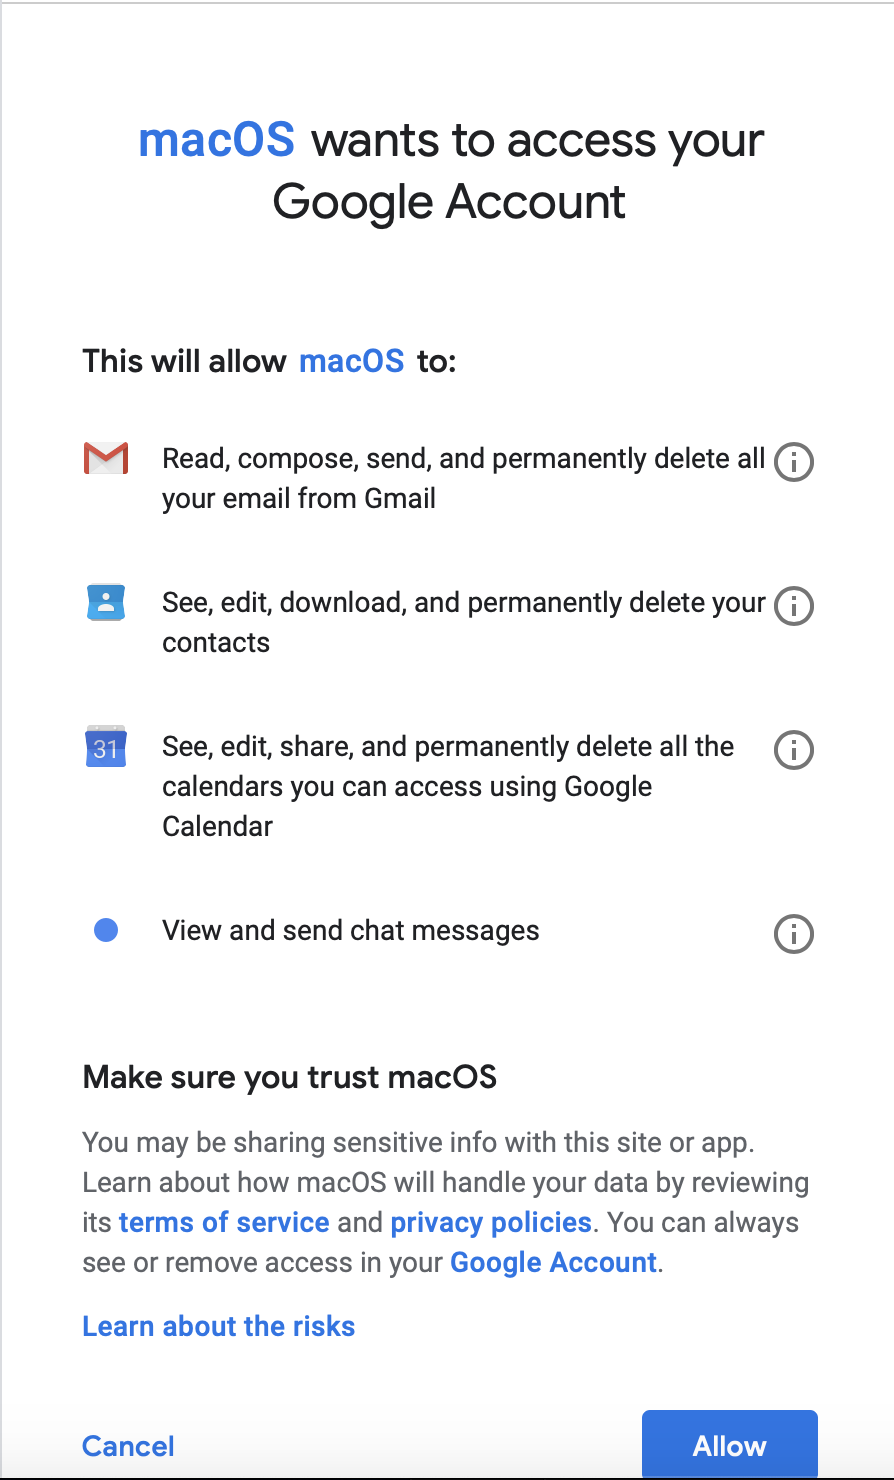 macOS wants access to your Google account - Apple Community